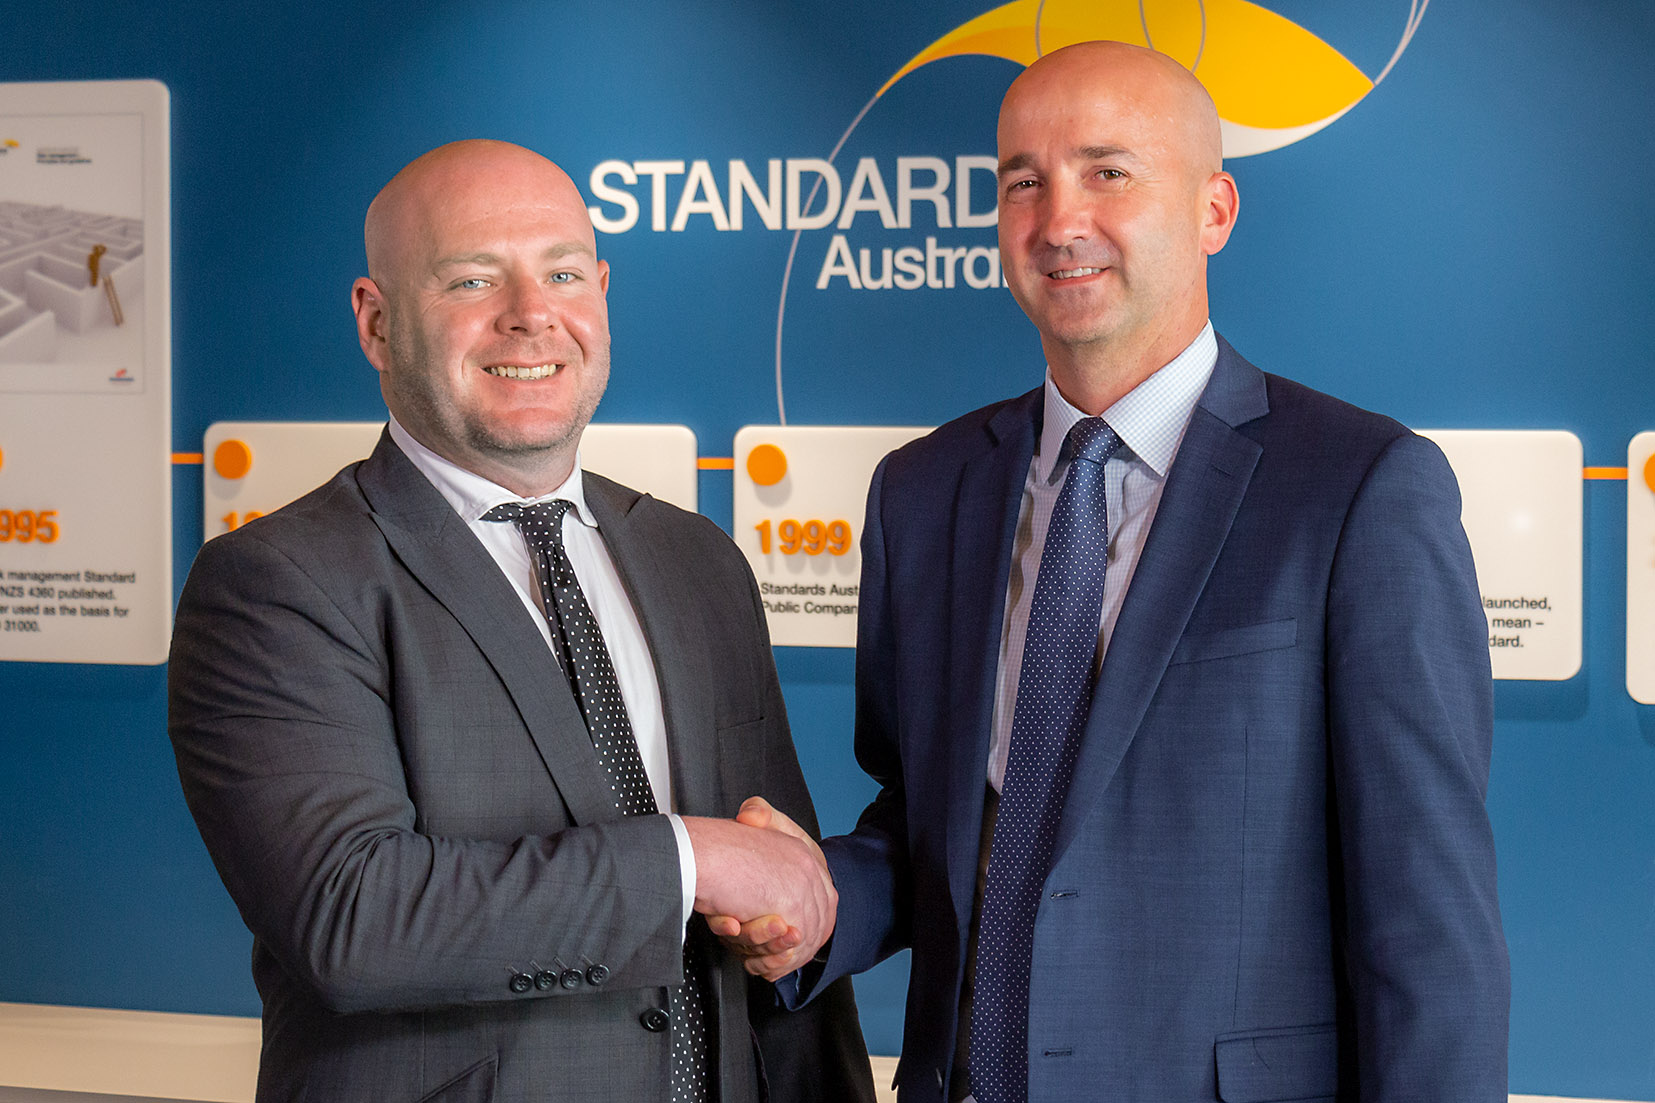 Standards Australia partners with Techstreet to deliver greater access and choice for users of Australian Standards®